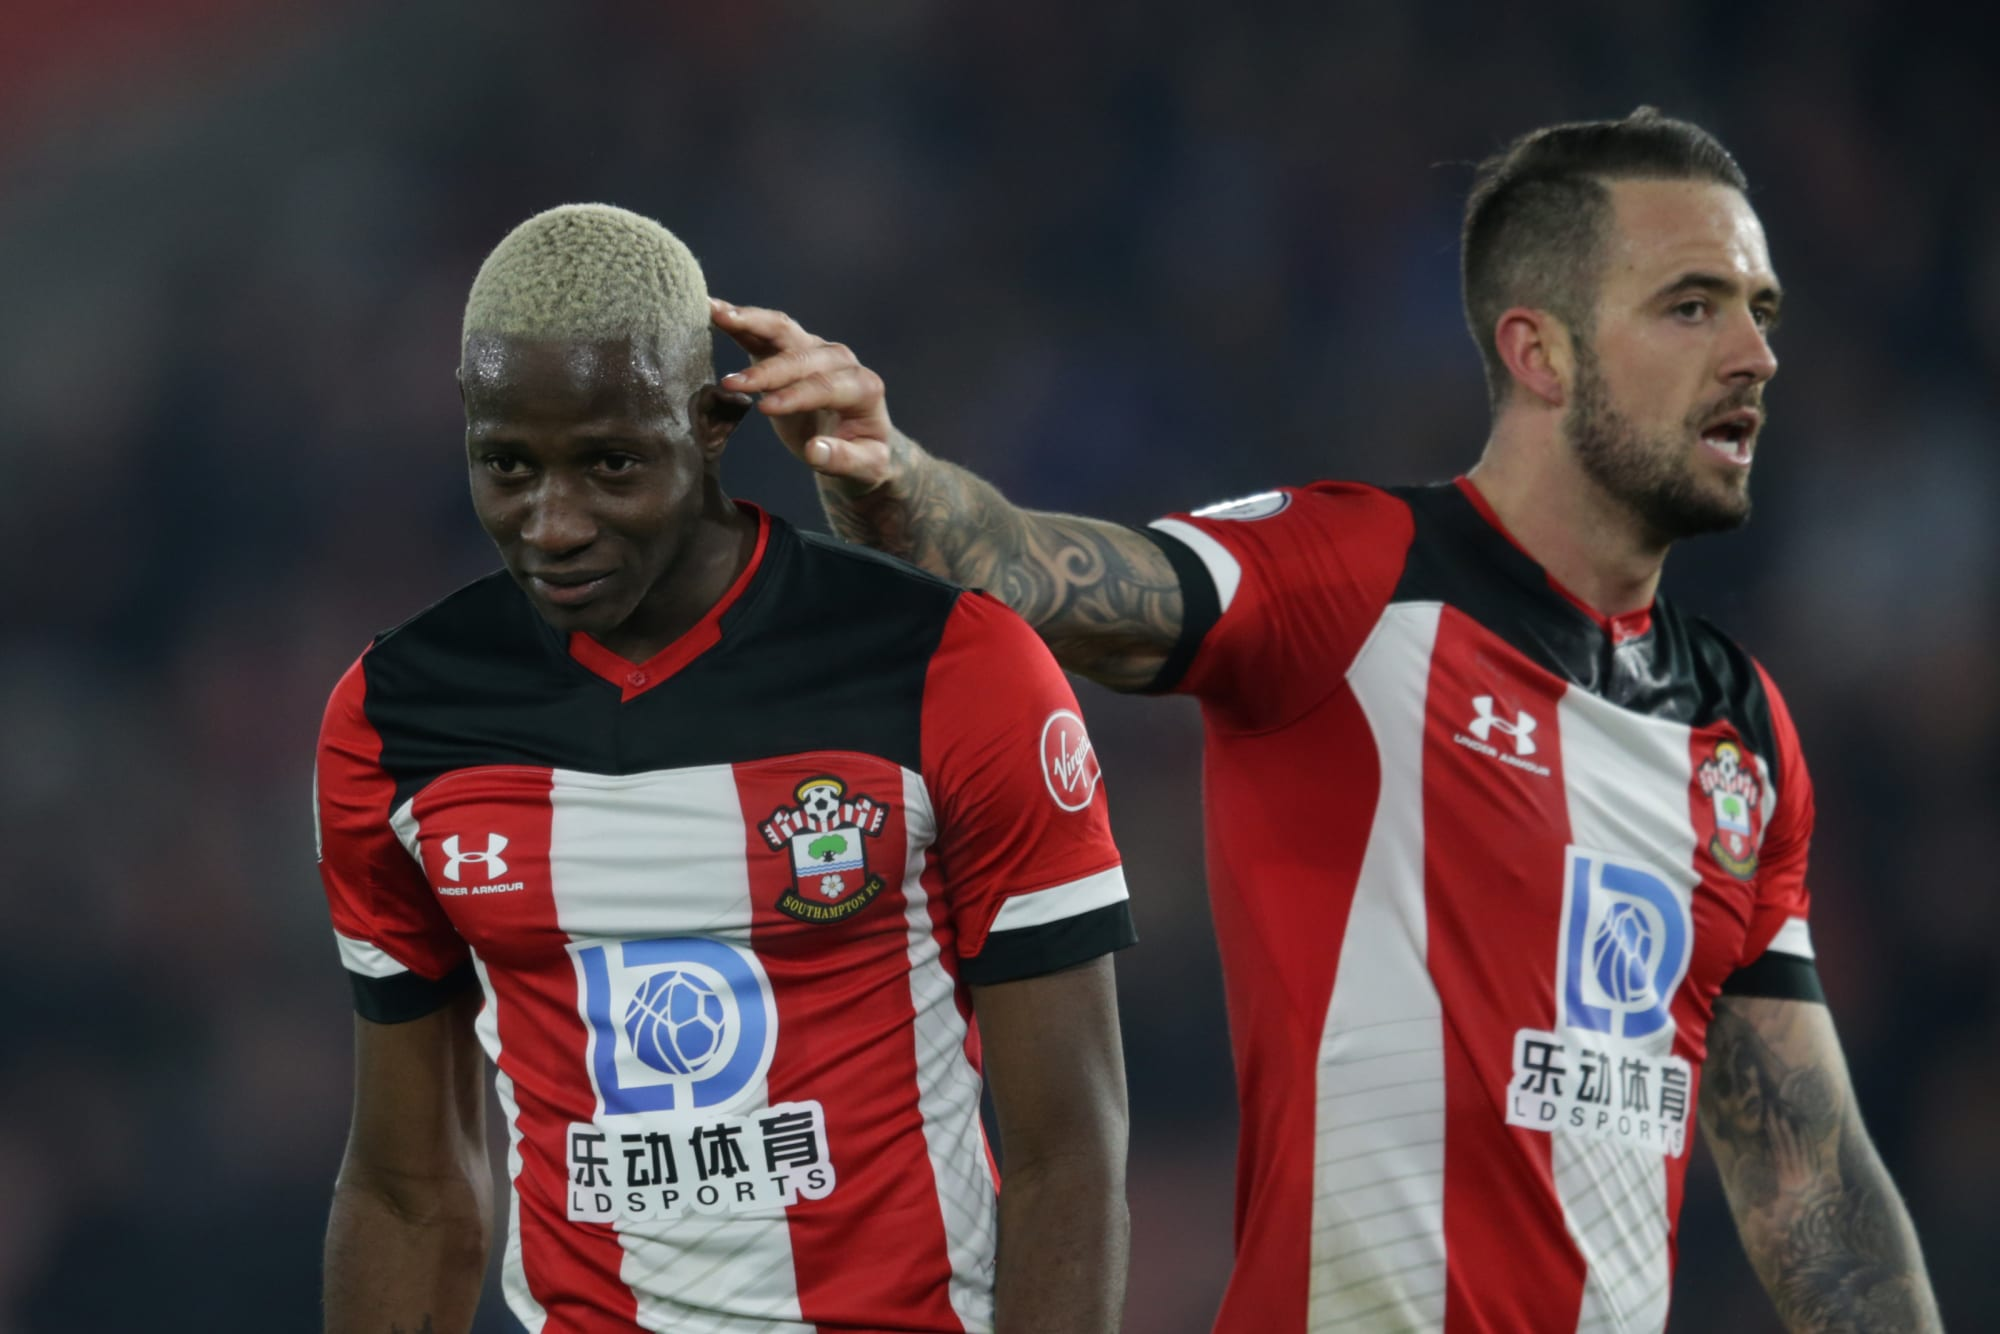 Southampton: Ings and Djenepo up for 2019/20 Premier League awards